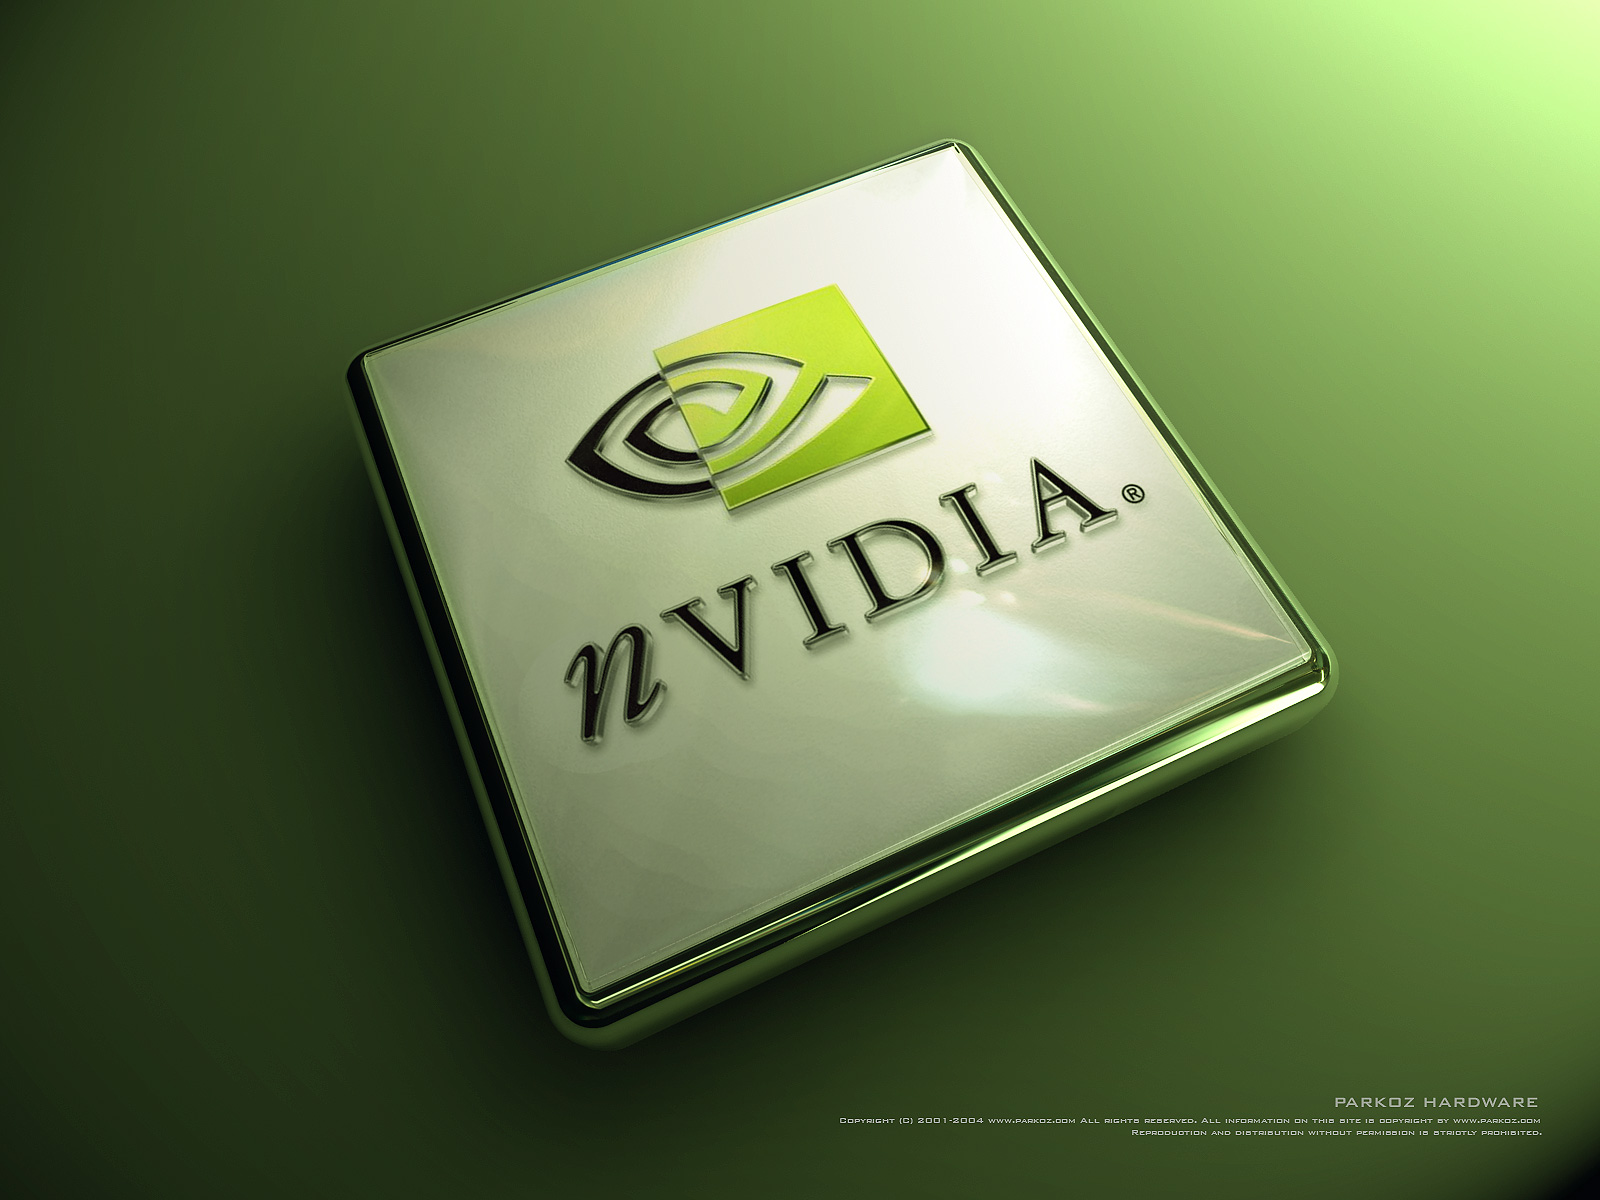 Nvidia Graphics Processor 3D Logo & Design Backgrounds